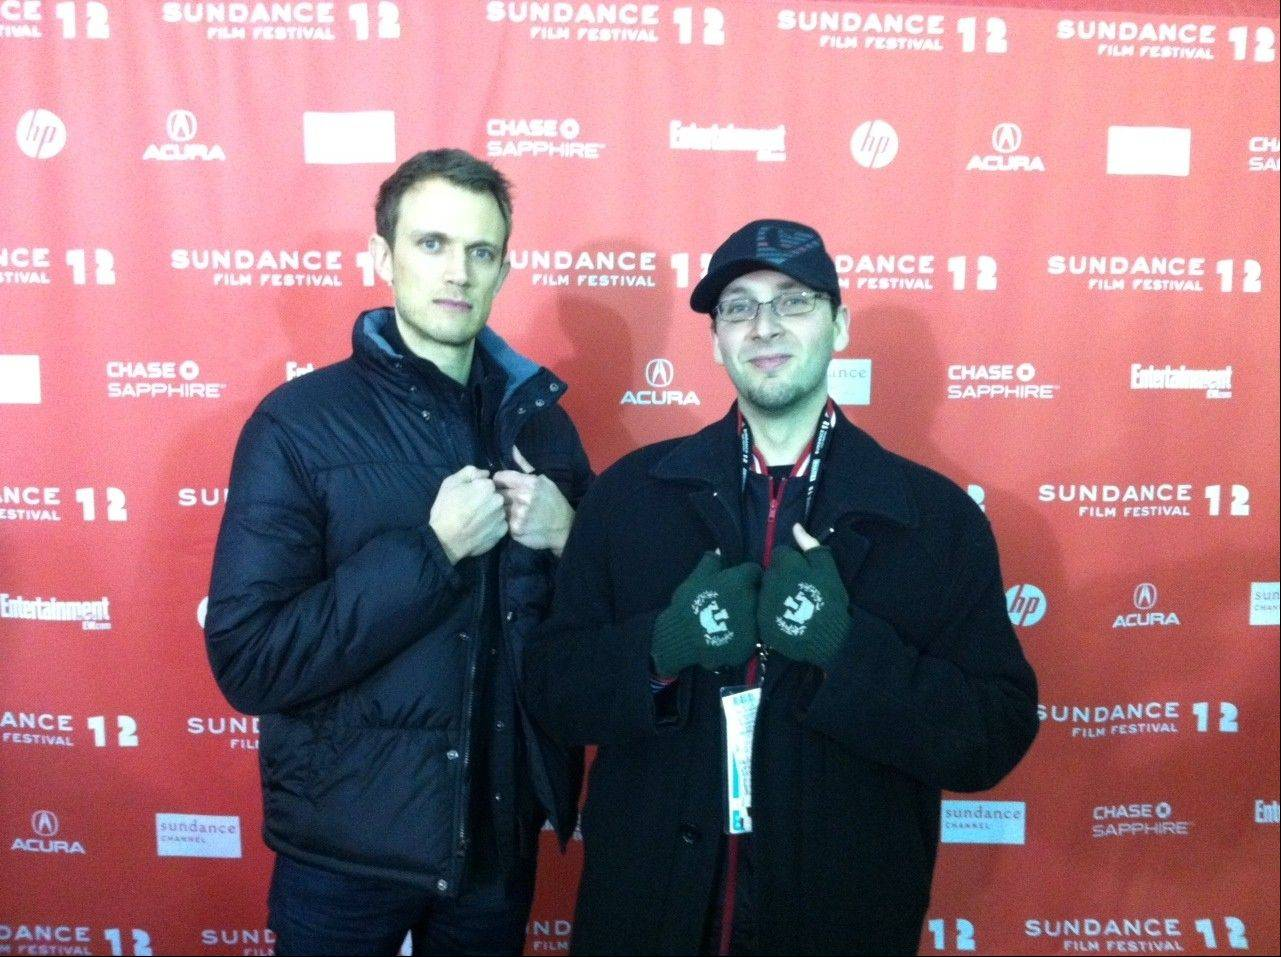 """V/H/S"" producers Matt Bettinelli-Olpin and Brad Miska, of Buffalo Grove, pose on the red carpet before the screening of their new horror movie at this year's Sundance Film Festival."